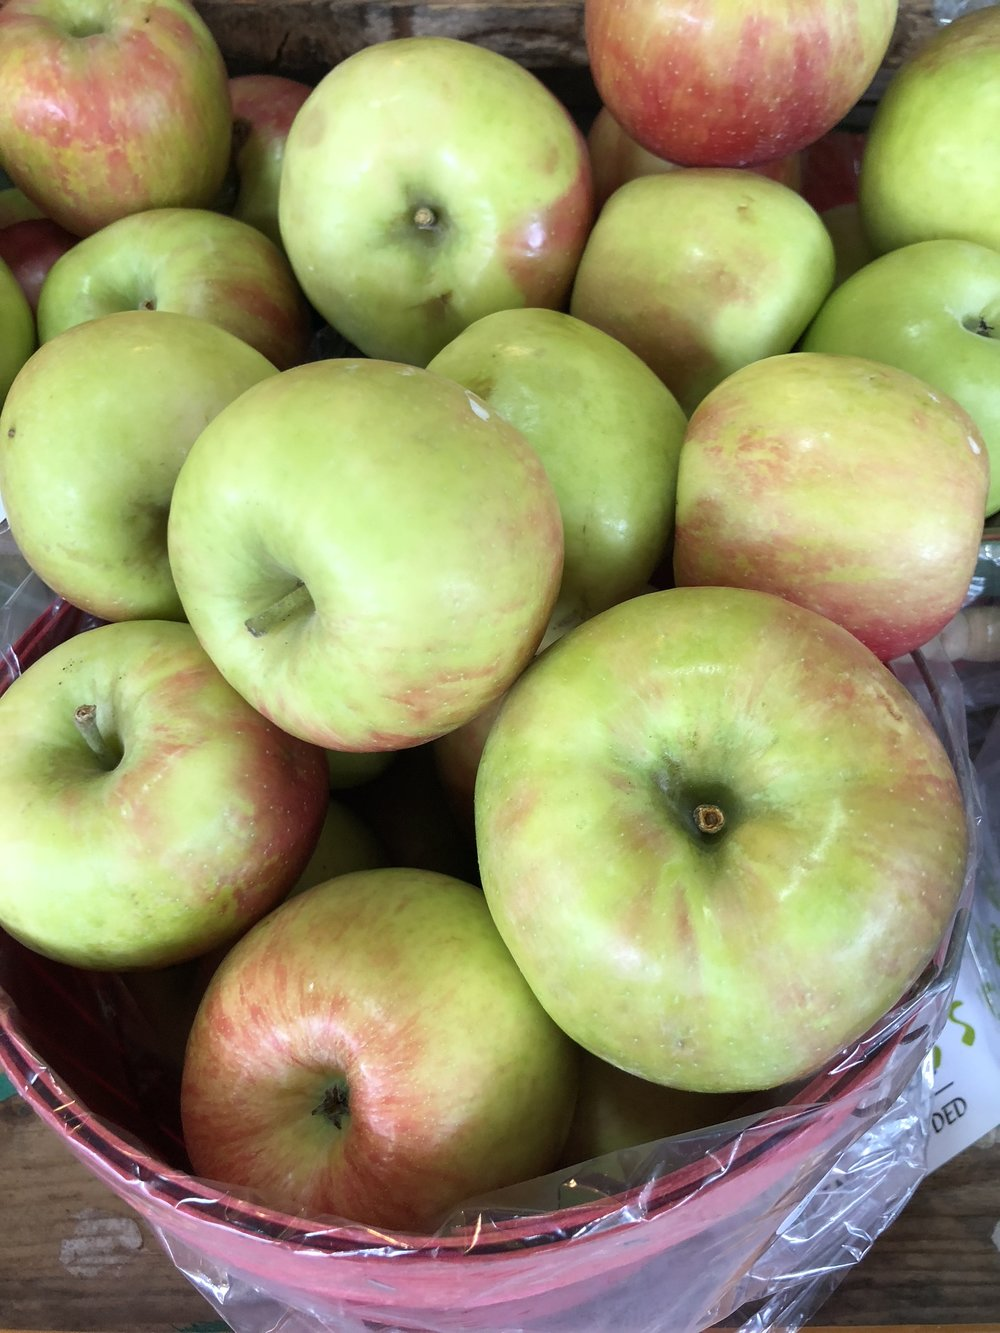 Locally grown apples at Russo's.